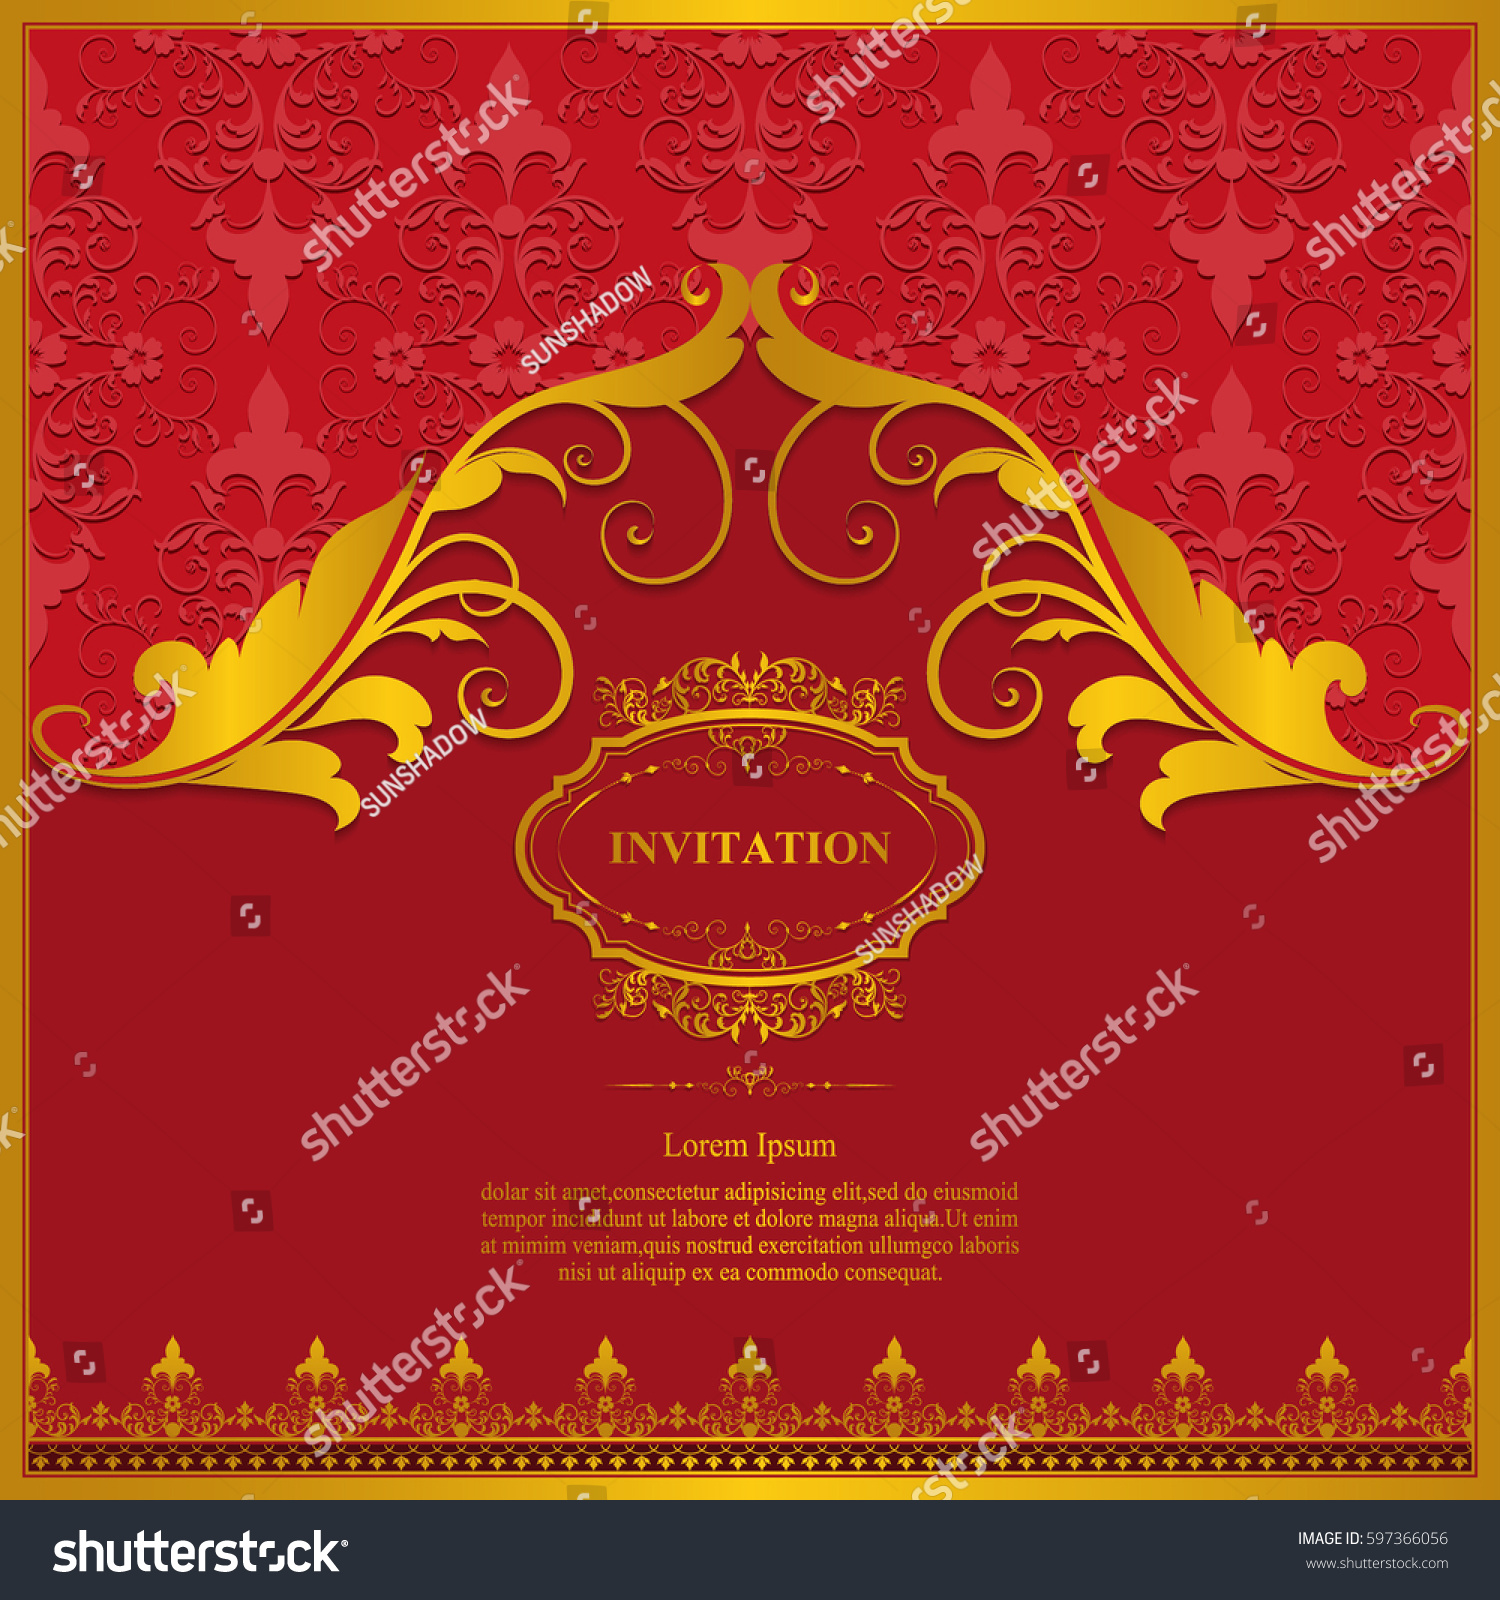 Wedding Invitation Card Vintage Floral Elementsvector Stock Vector ...